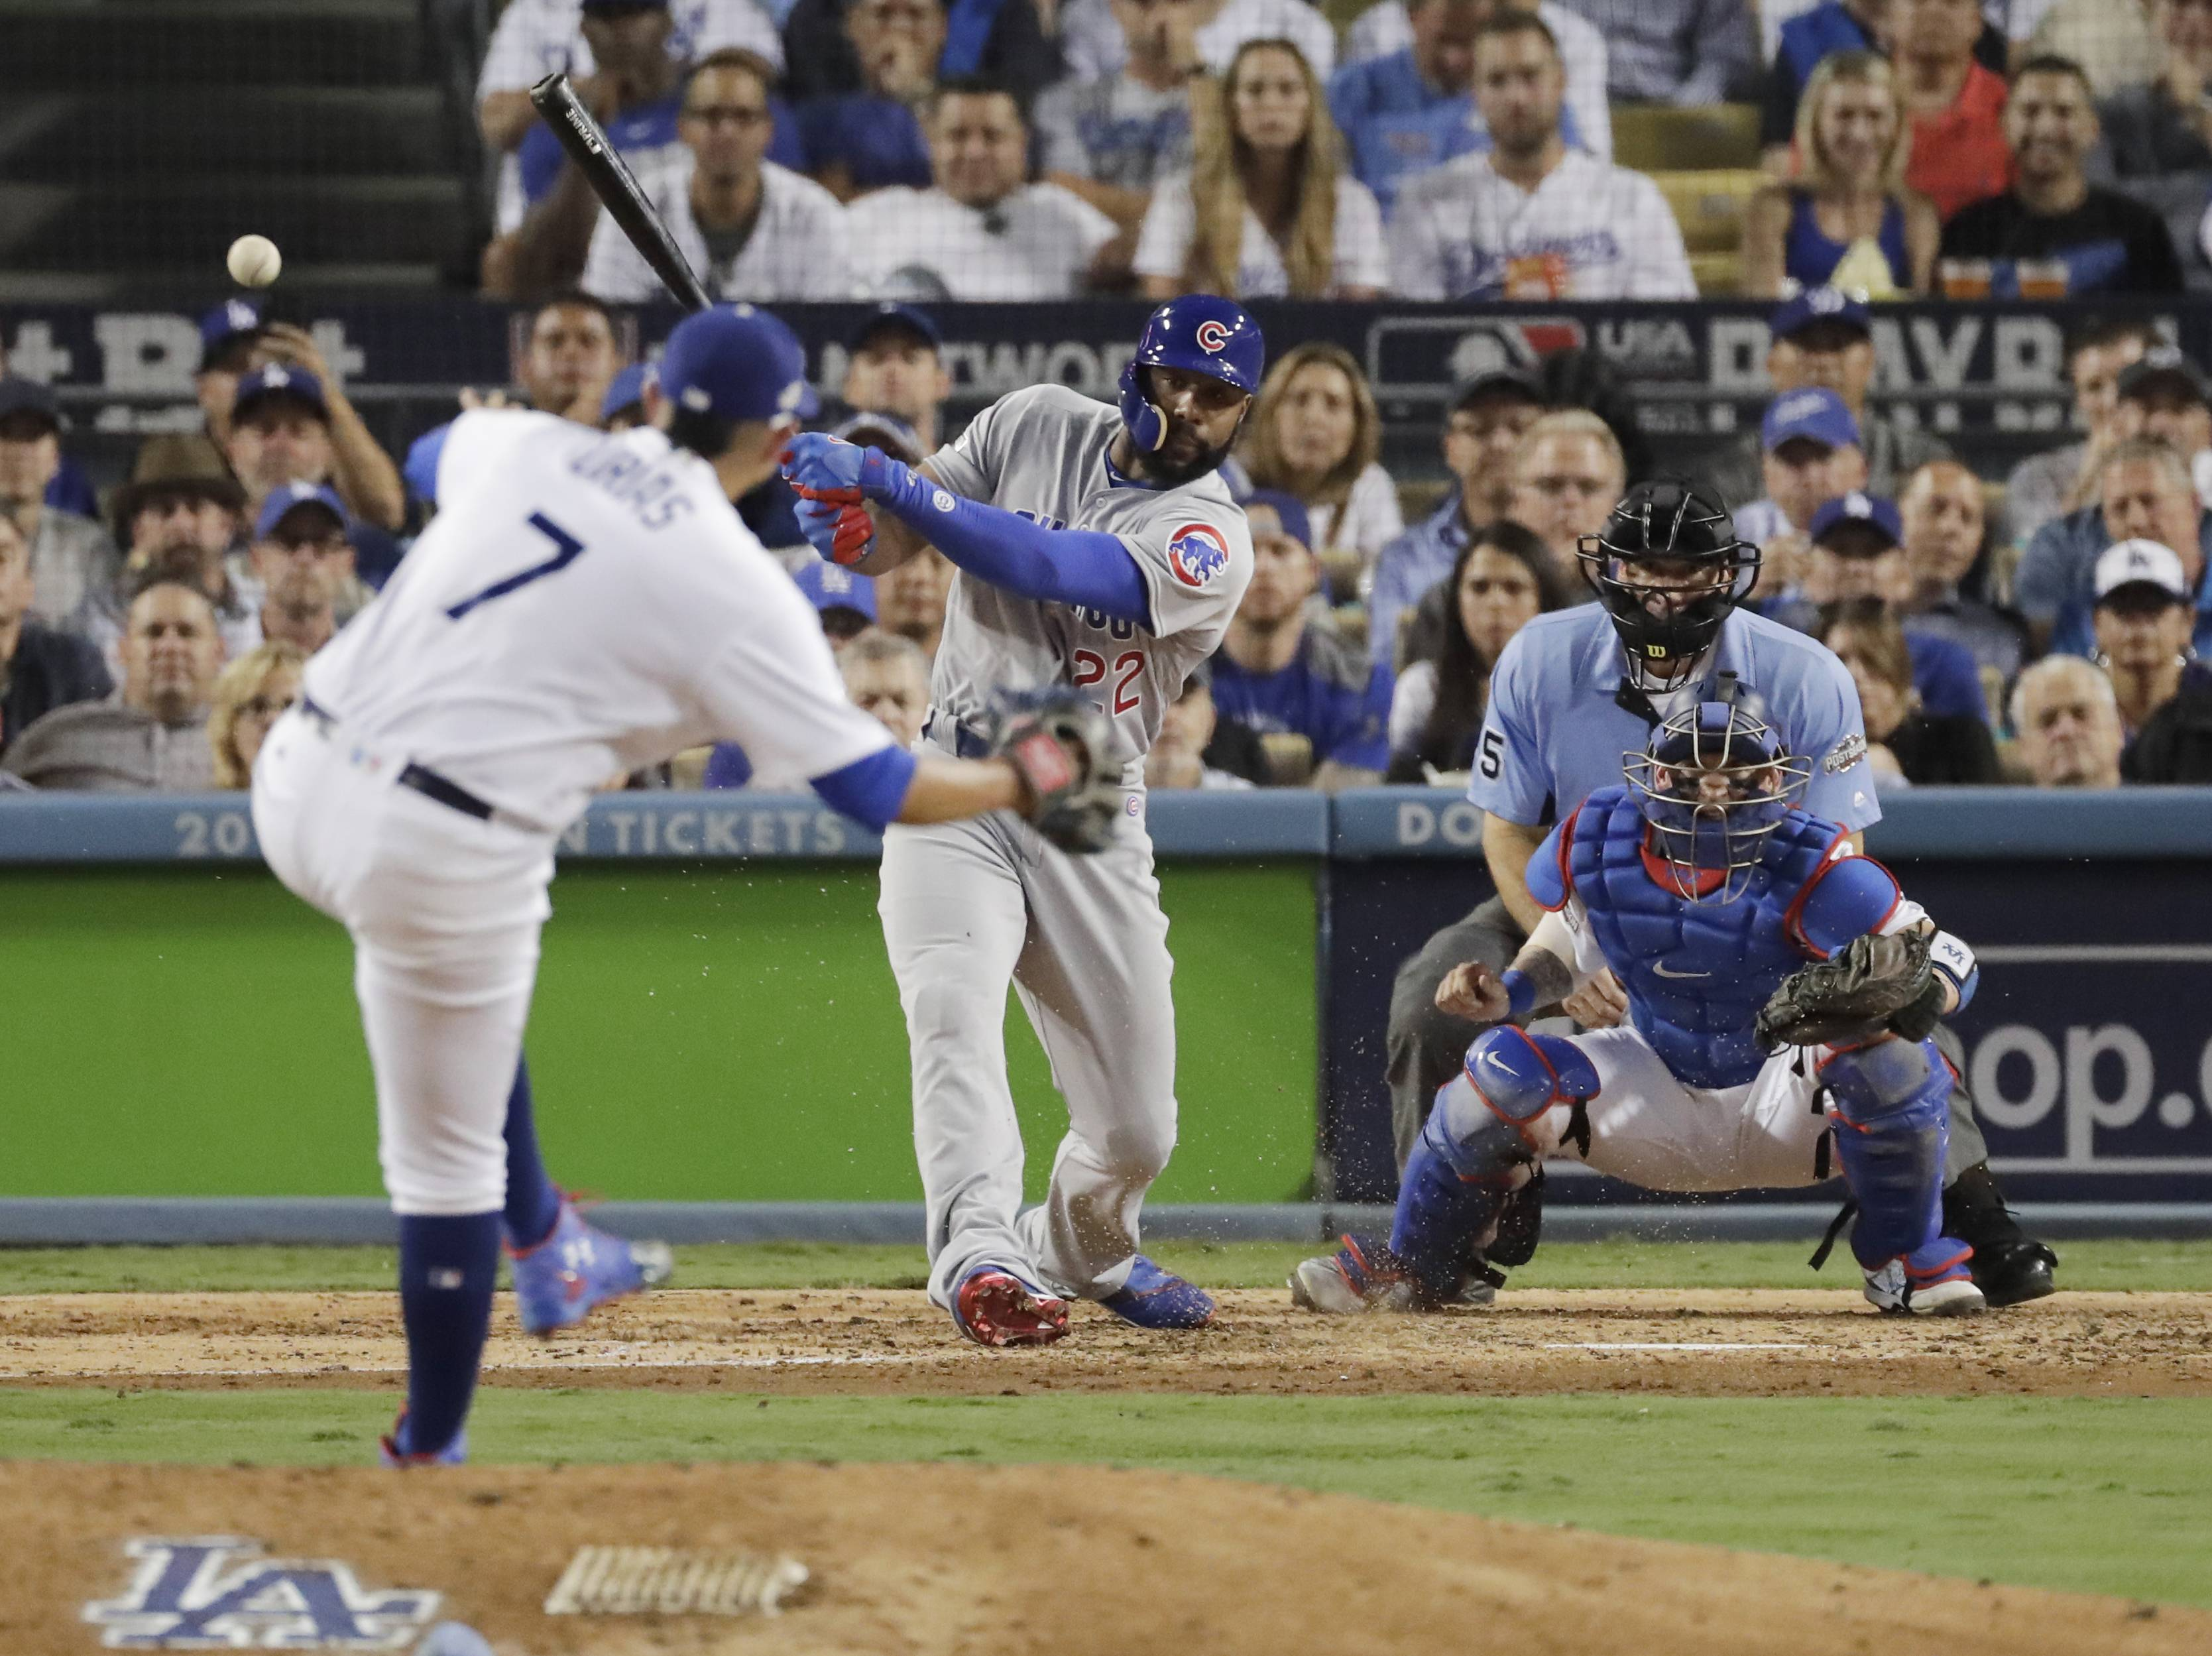 The Chicago Cubs have cleared a World Series roster spot for Kyle Schwarber, who missed nearly all of the regular season after a serious knee injury.